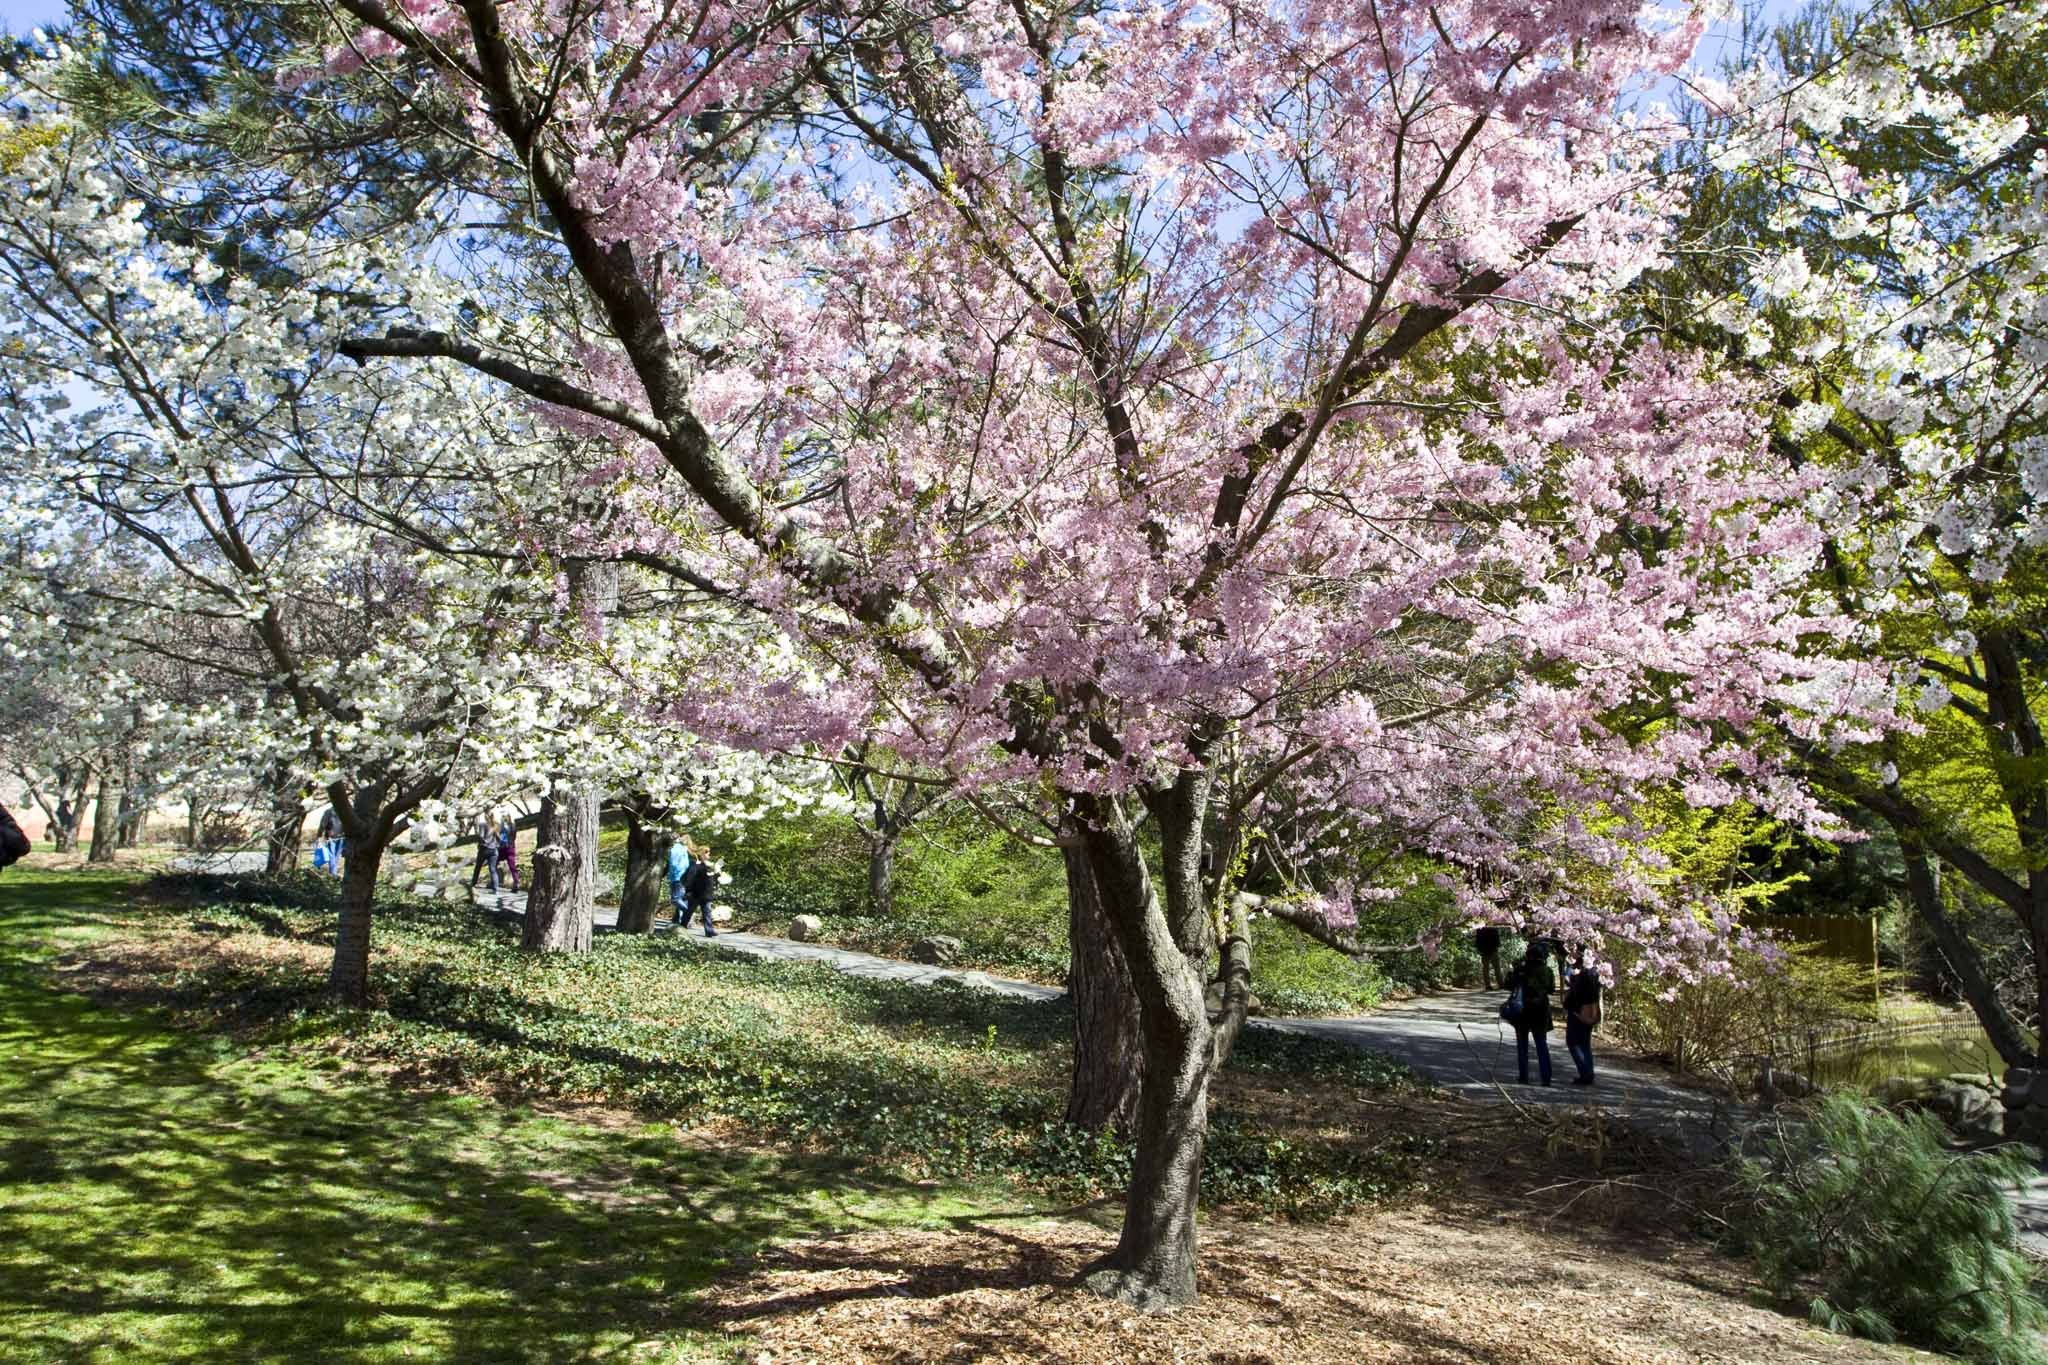 Stop and smell the cherry blossoms at Hanami